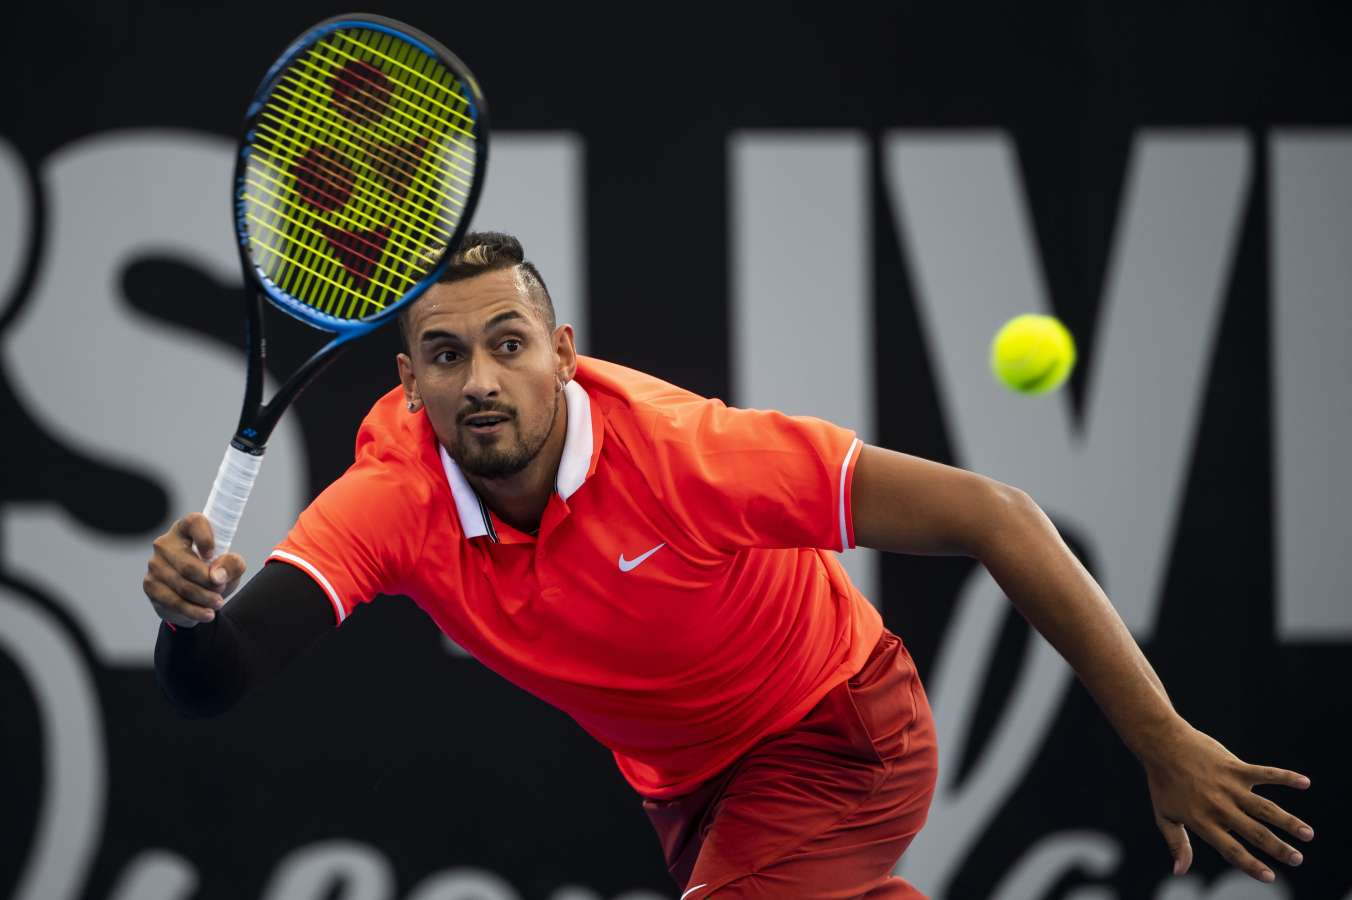 What Are The Odds Canadian Players Could Win The Australian Open?